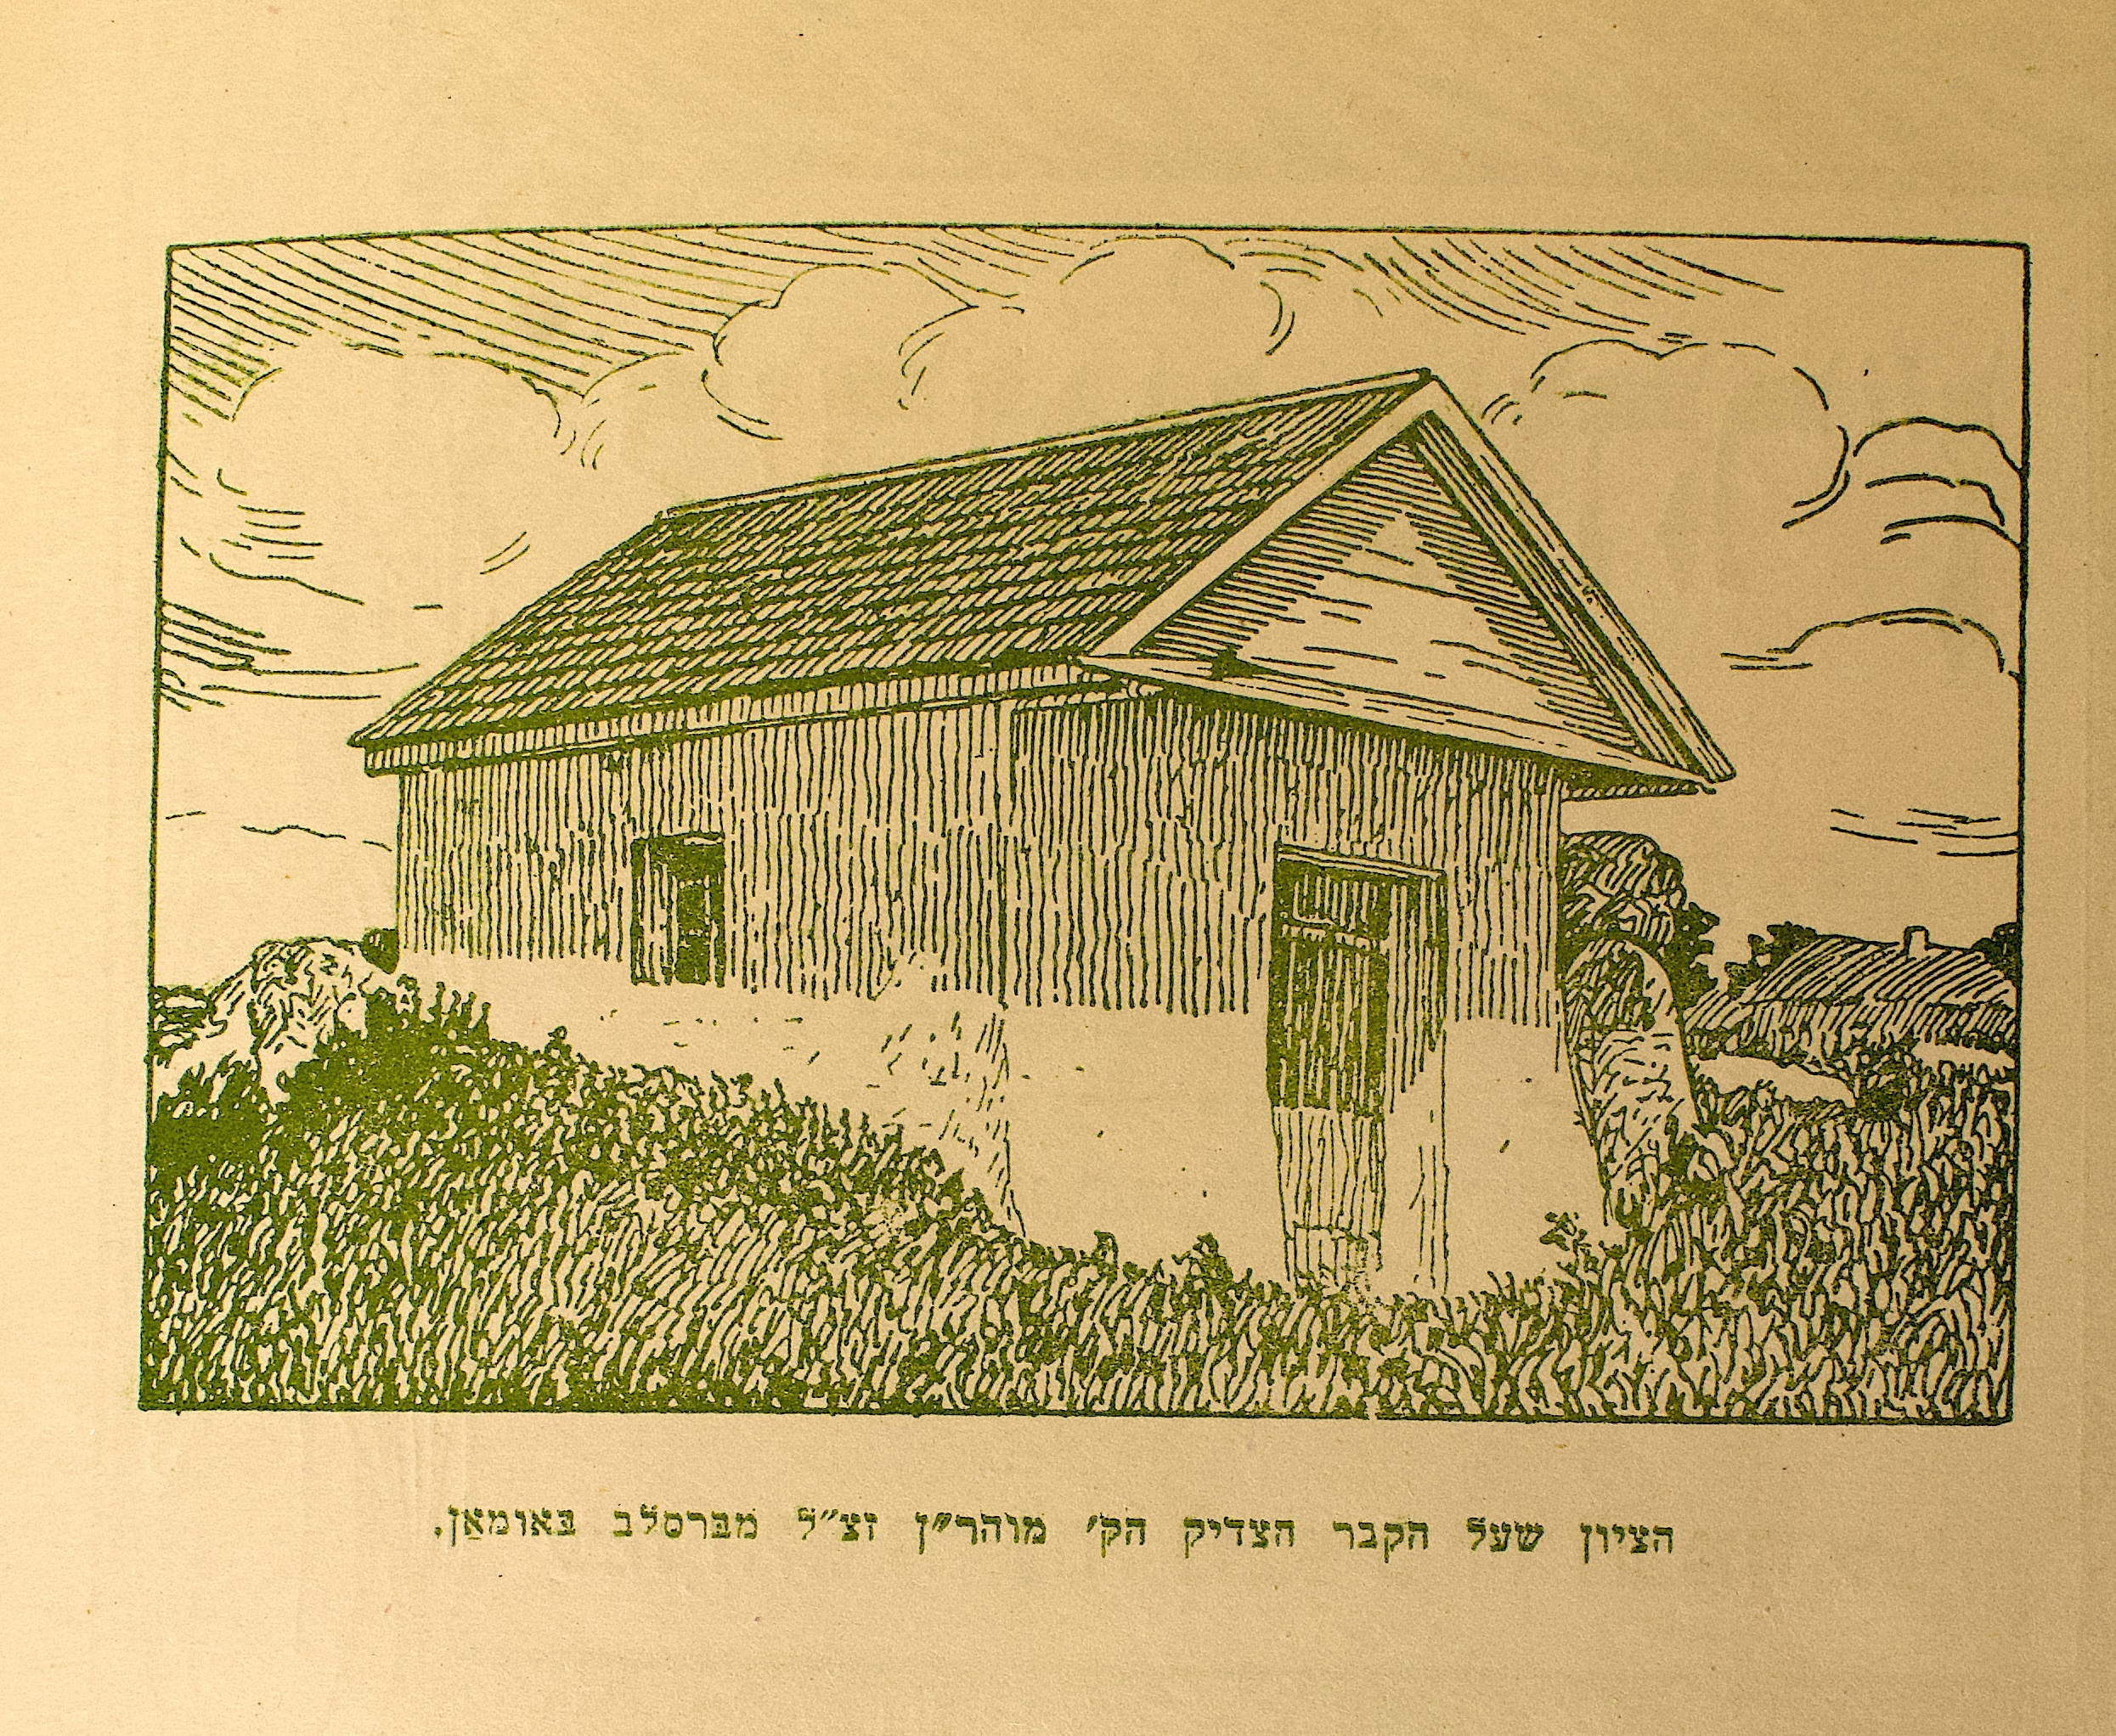 <p>Print (possibly woodcut) of the &#8220;Tsiyun,&#8221; the structure over Reb Nakhmen&#8217;s grave in Uman. From the 1924 Warsaw edition of <em>Likutei </em><em>Moharan</em>, The Schocken Institute for Jewish Research,&nbsp;Jerusalem. </p>